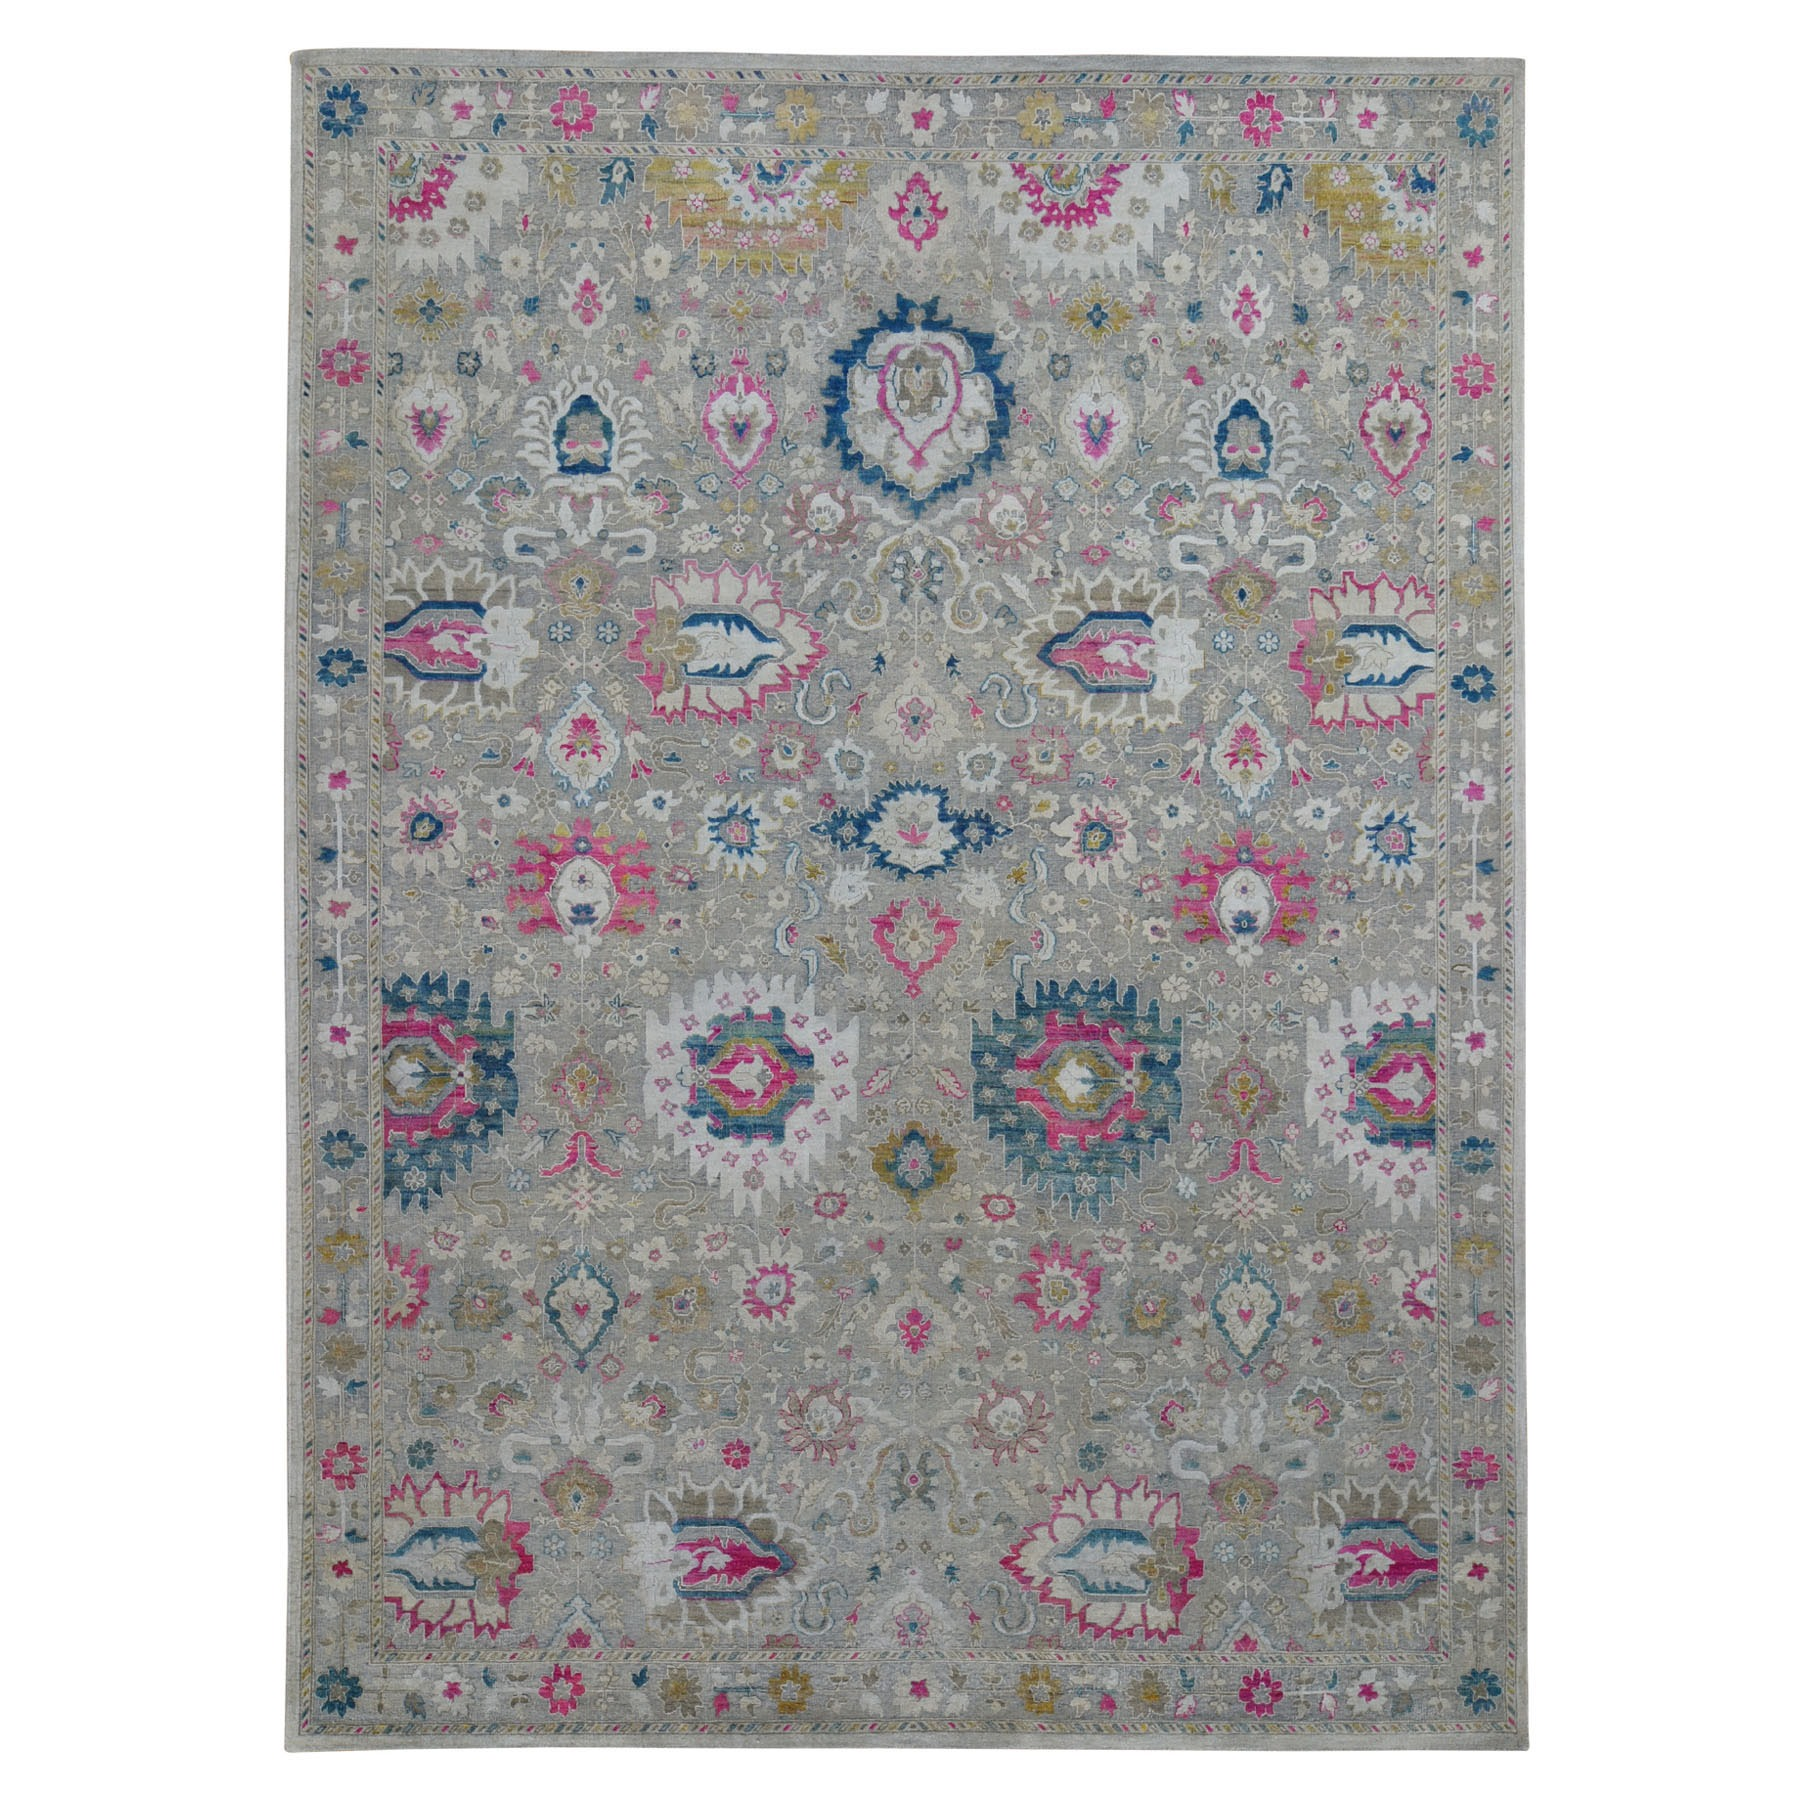 "9'x12'1"" Colorful Sari Silk With Textured Wool Hand Knotted Oushak Influence Rug"